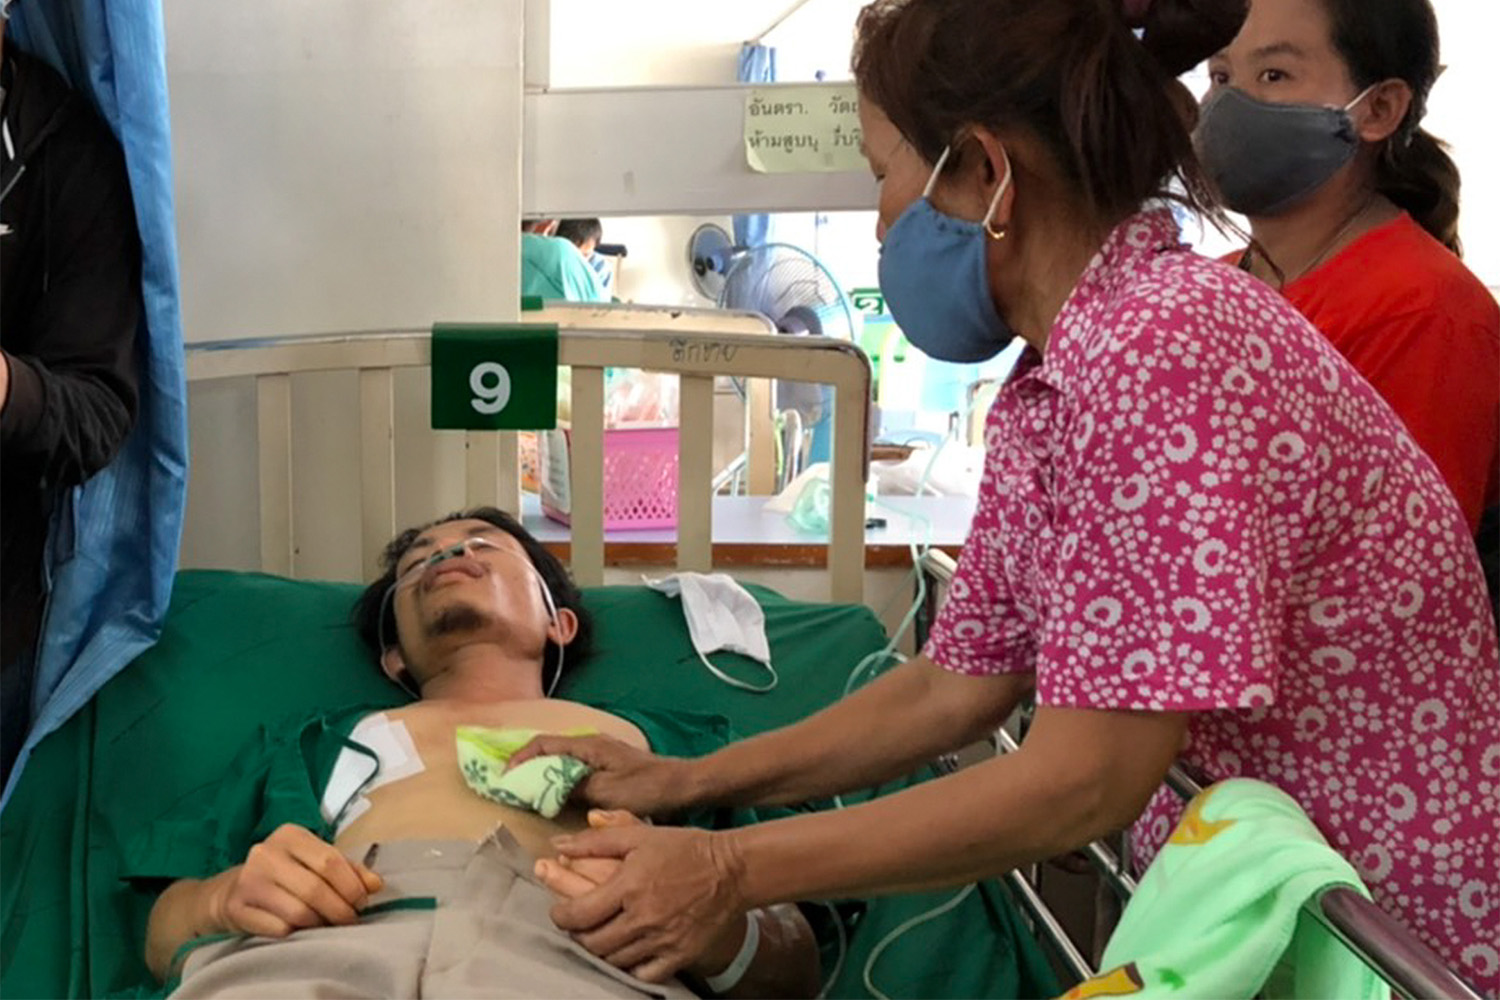 Severely injured Yutthana Saisa is treated at That Phanom Crown Prince Hosital in That Phanom district of Nakhon Phanom, with his mother at his side on Sunday. (Photo: Pattanapong Sripiachai)